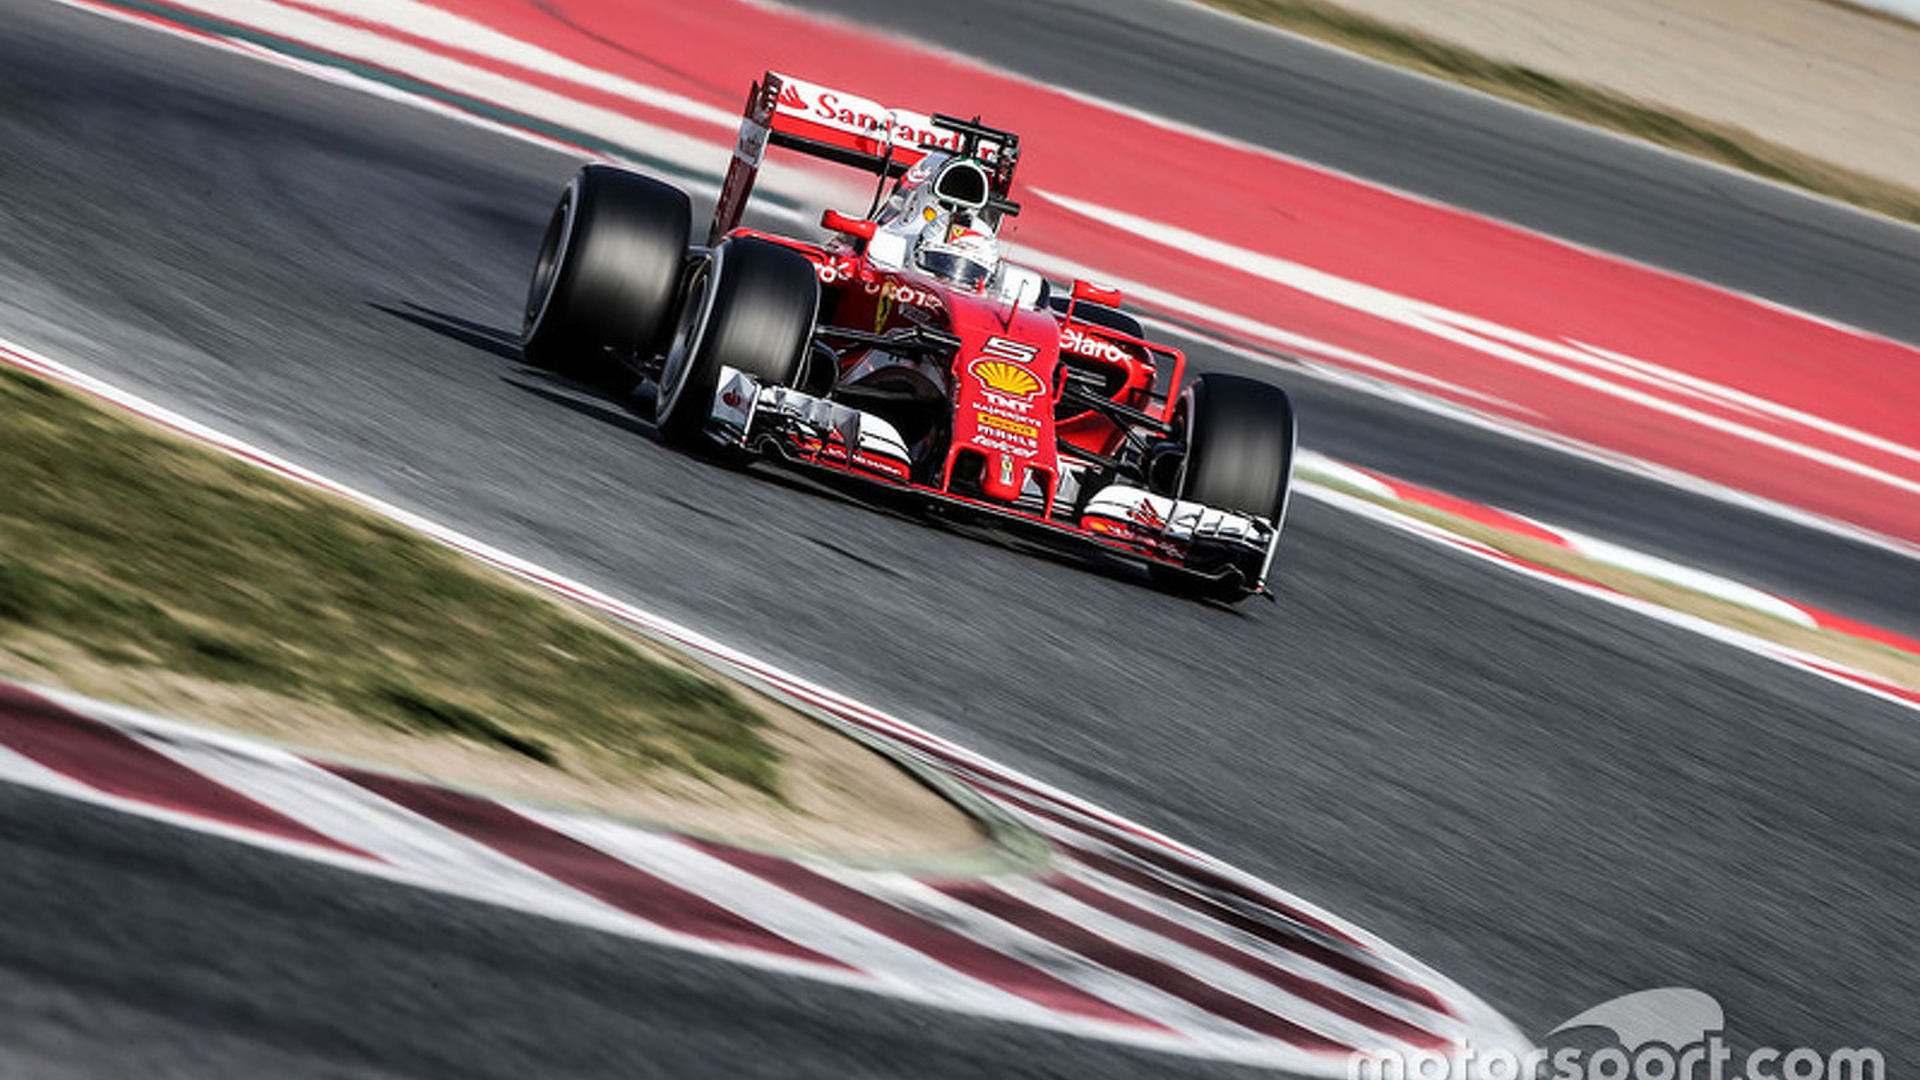 Analysis: Ferrari tops times, but was it really the quickest car?